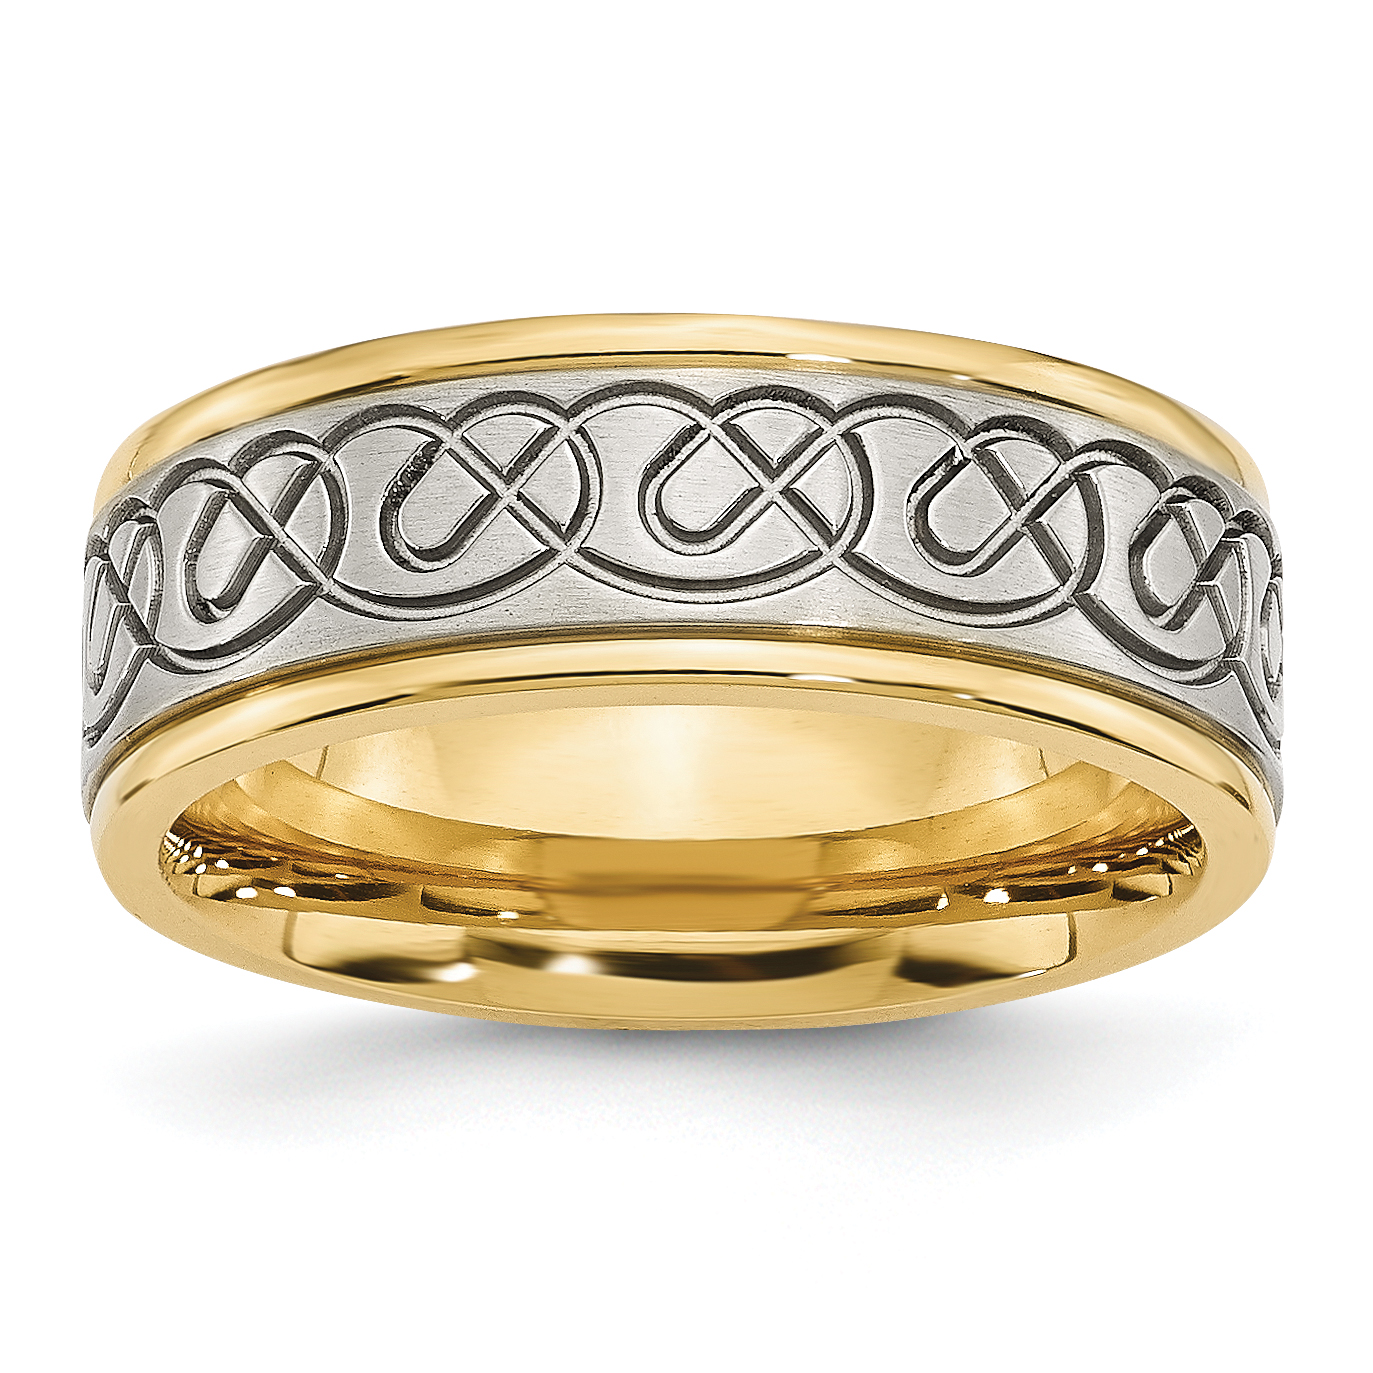 Stainless Steel 8mm Yellow IP-plated Brushed & Polished Band Ring 7 Size - image 6 of 6